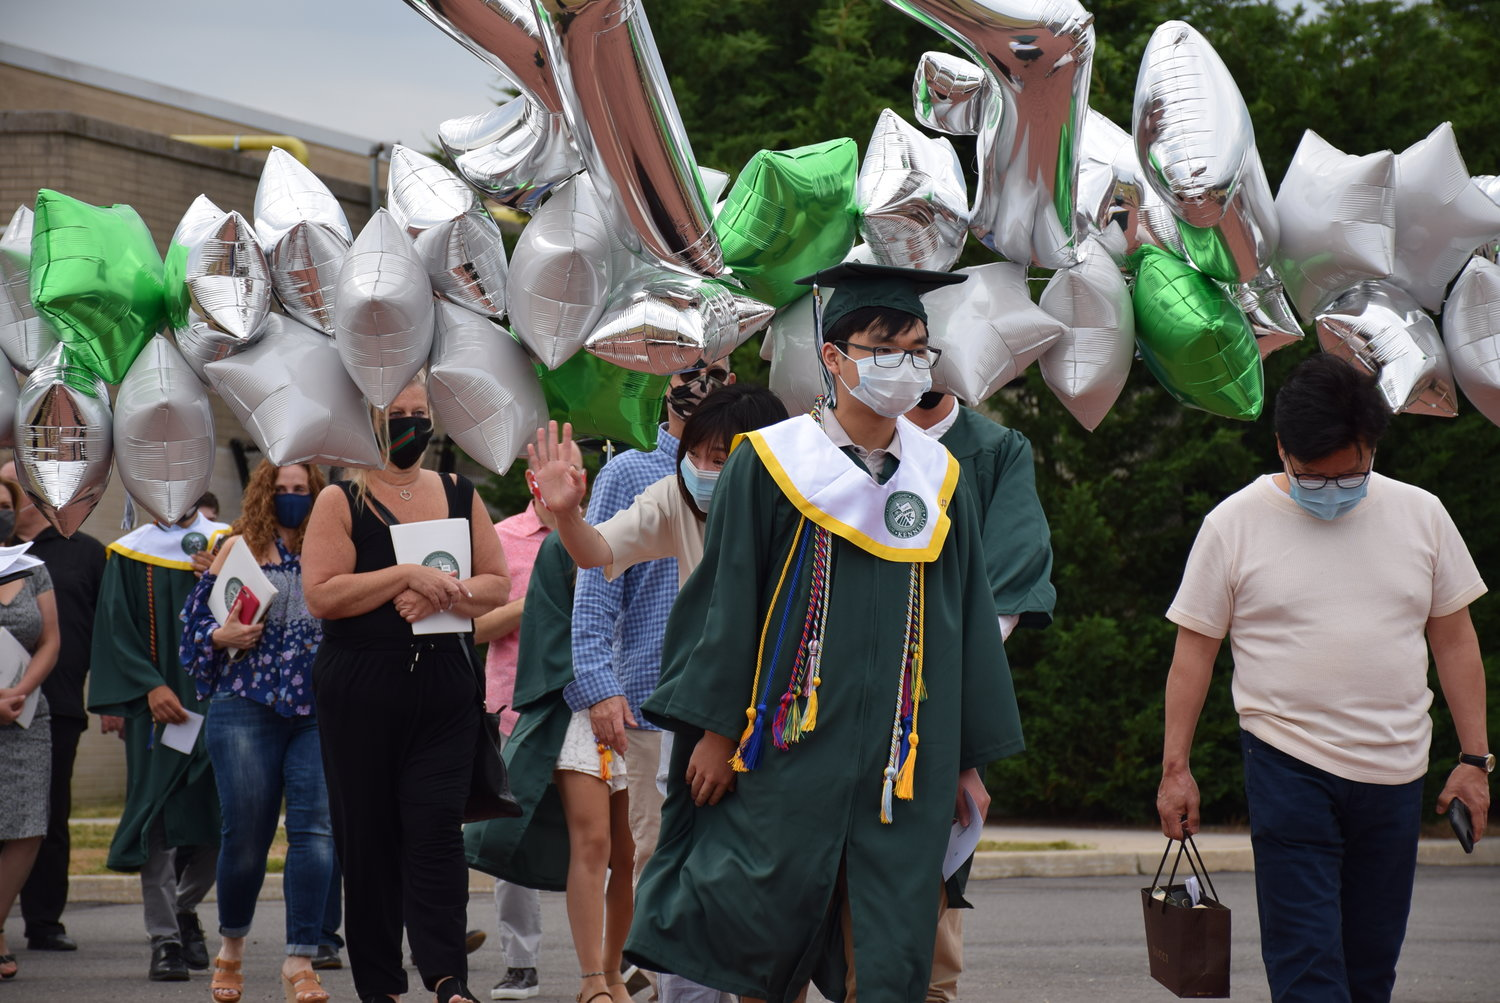 Kennedy senior Hu Cheung strolled along Cougar Walk during one of the school's graduation ceremonies on June 27.